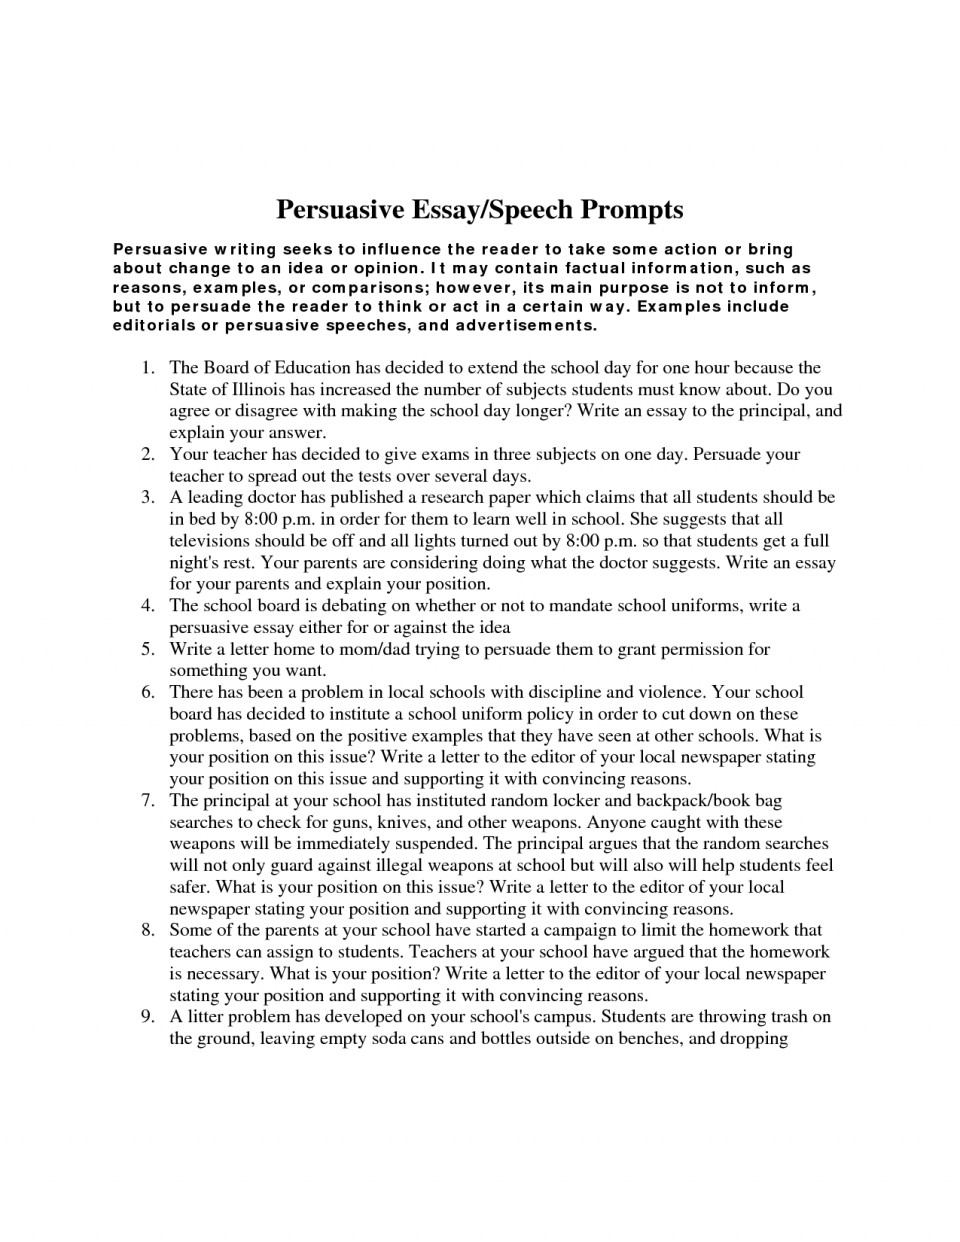 012 Essay Example Persuasive Prompts Informative Remarkable Topics For High School 4th Grade Expository 960